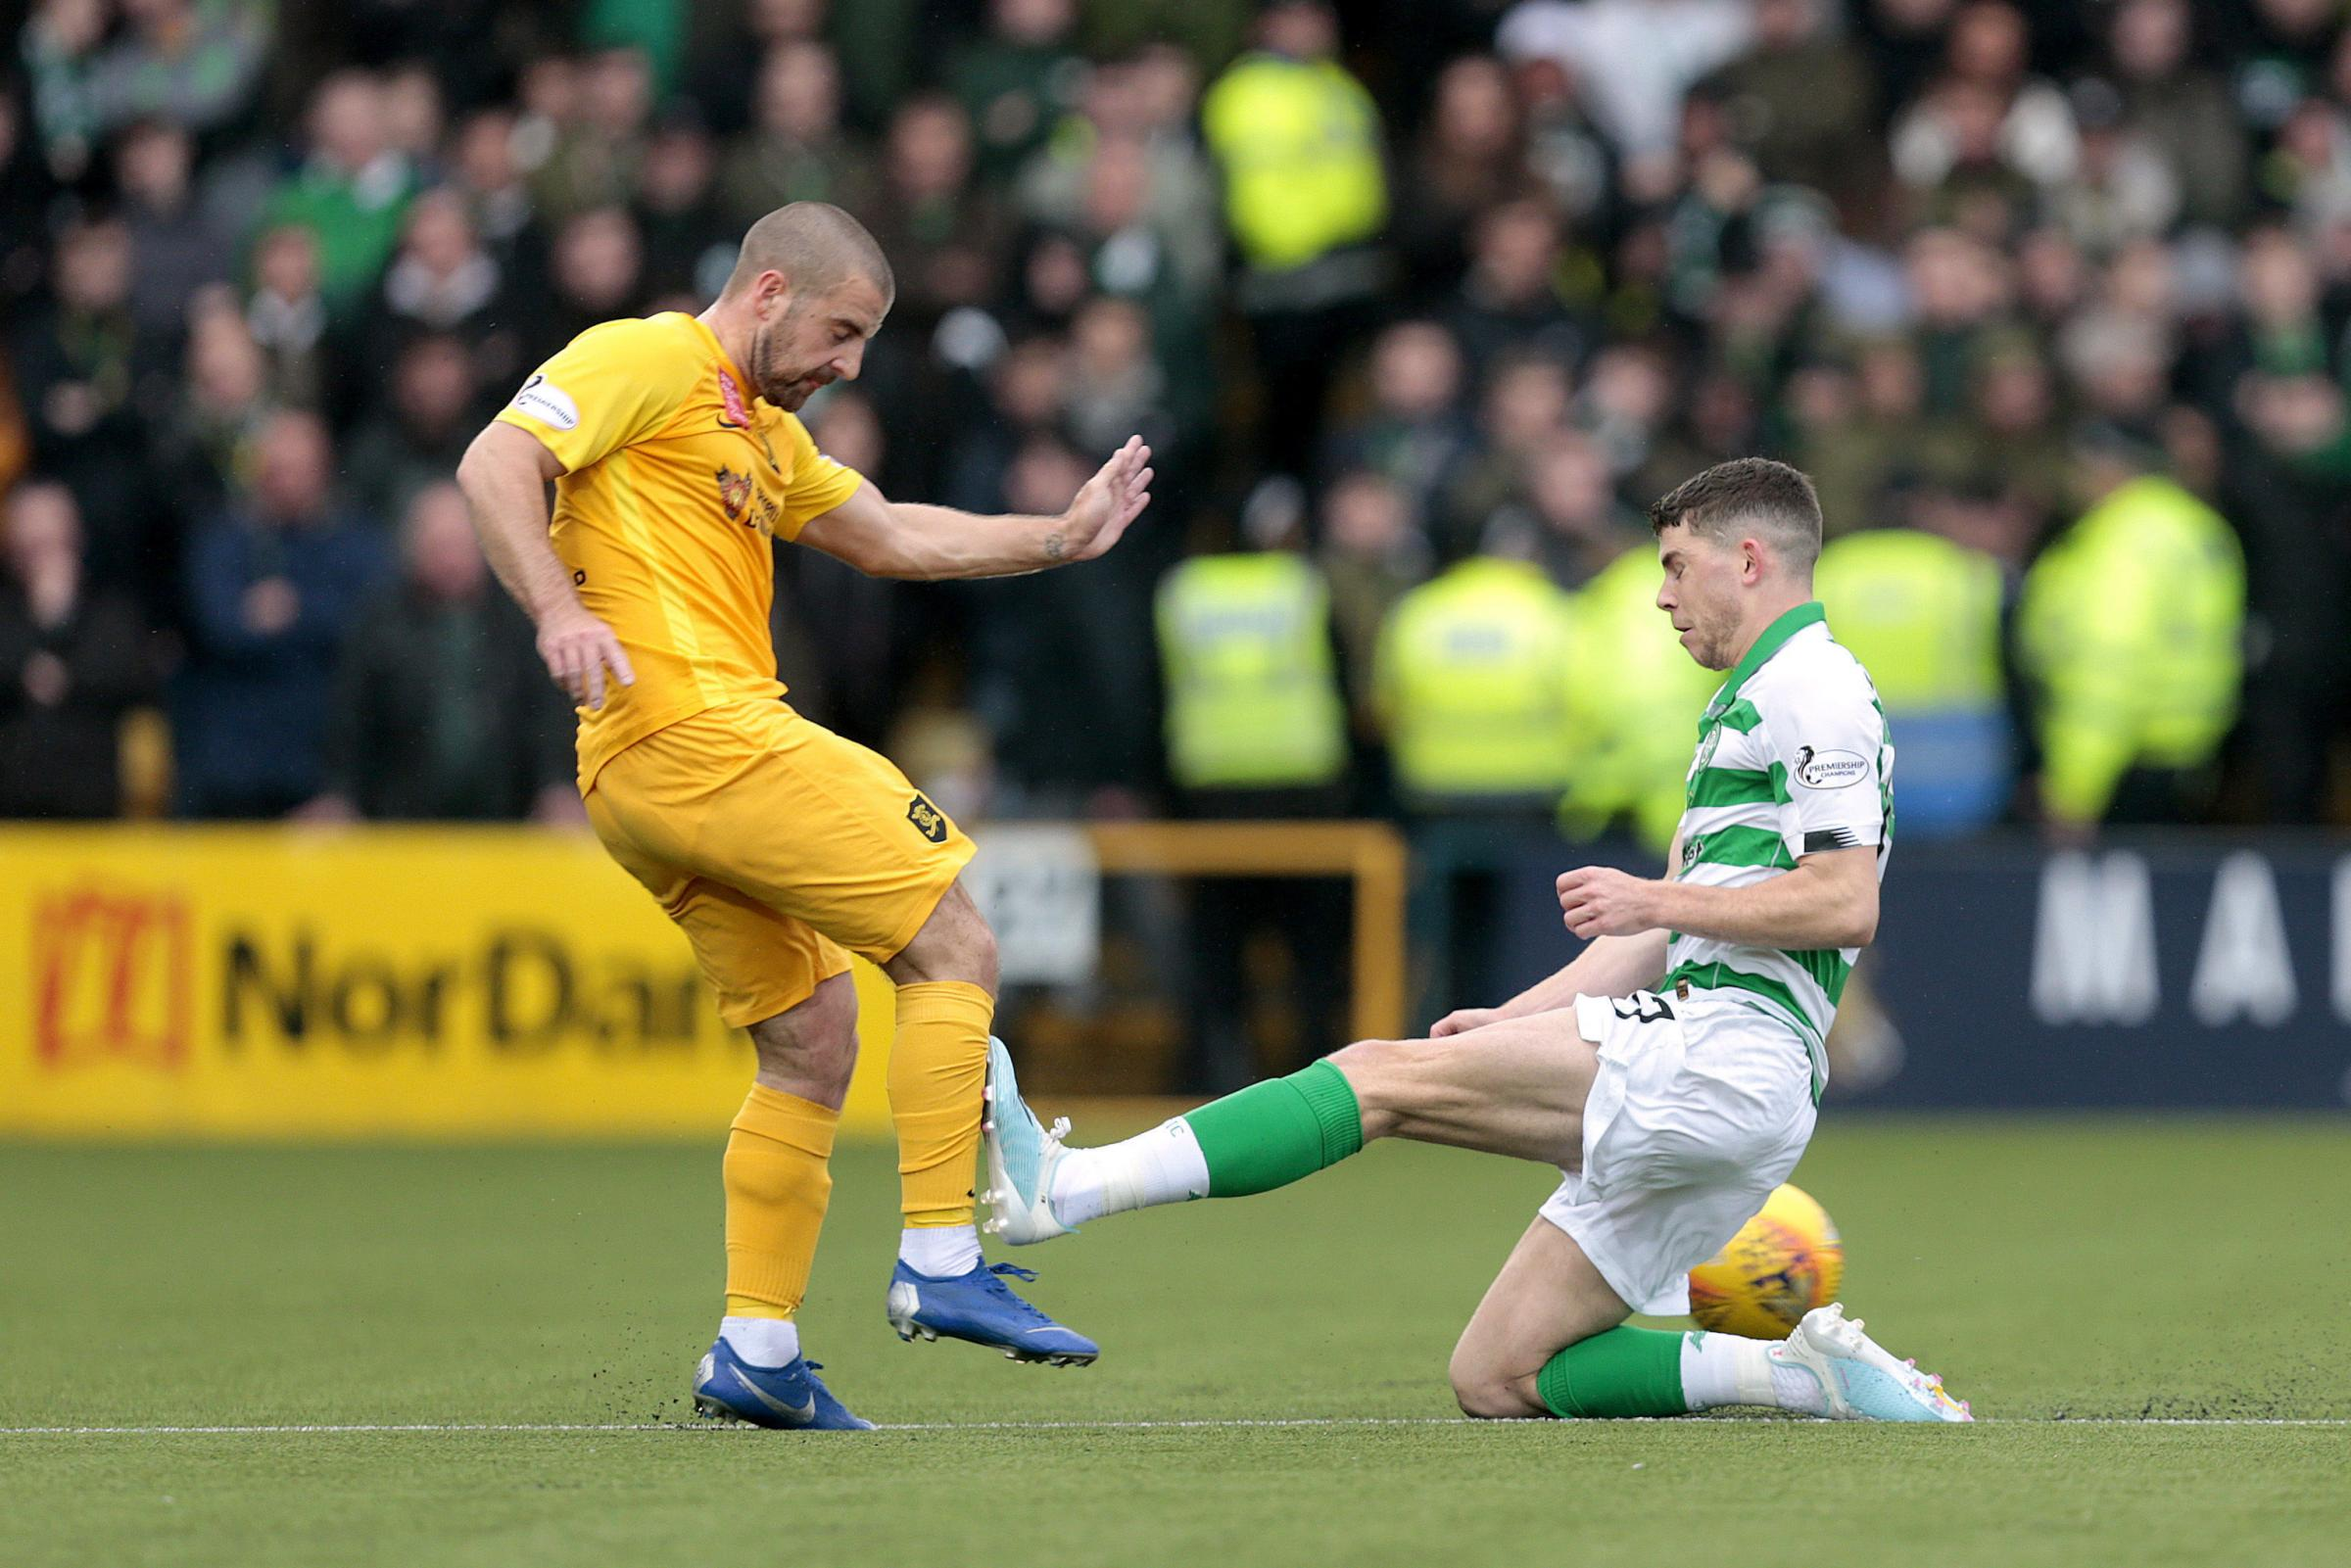 Celtic were in control until red card proved costly in Livingston defeat, says Neil Lennon